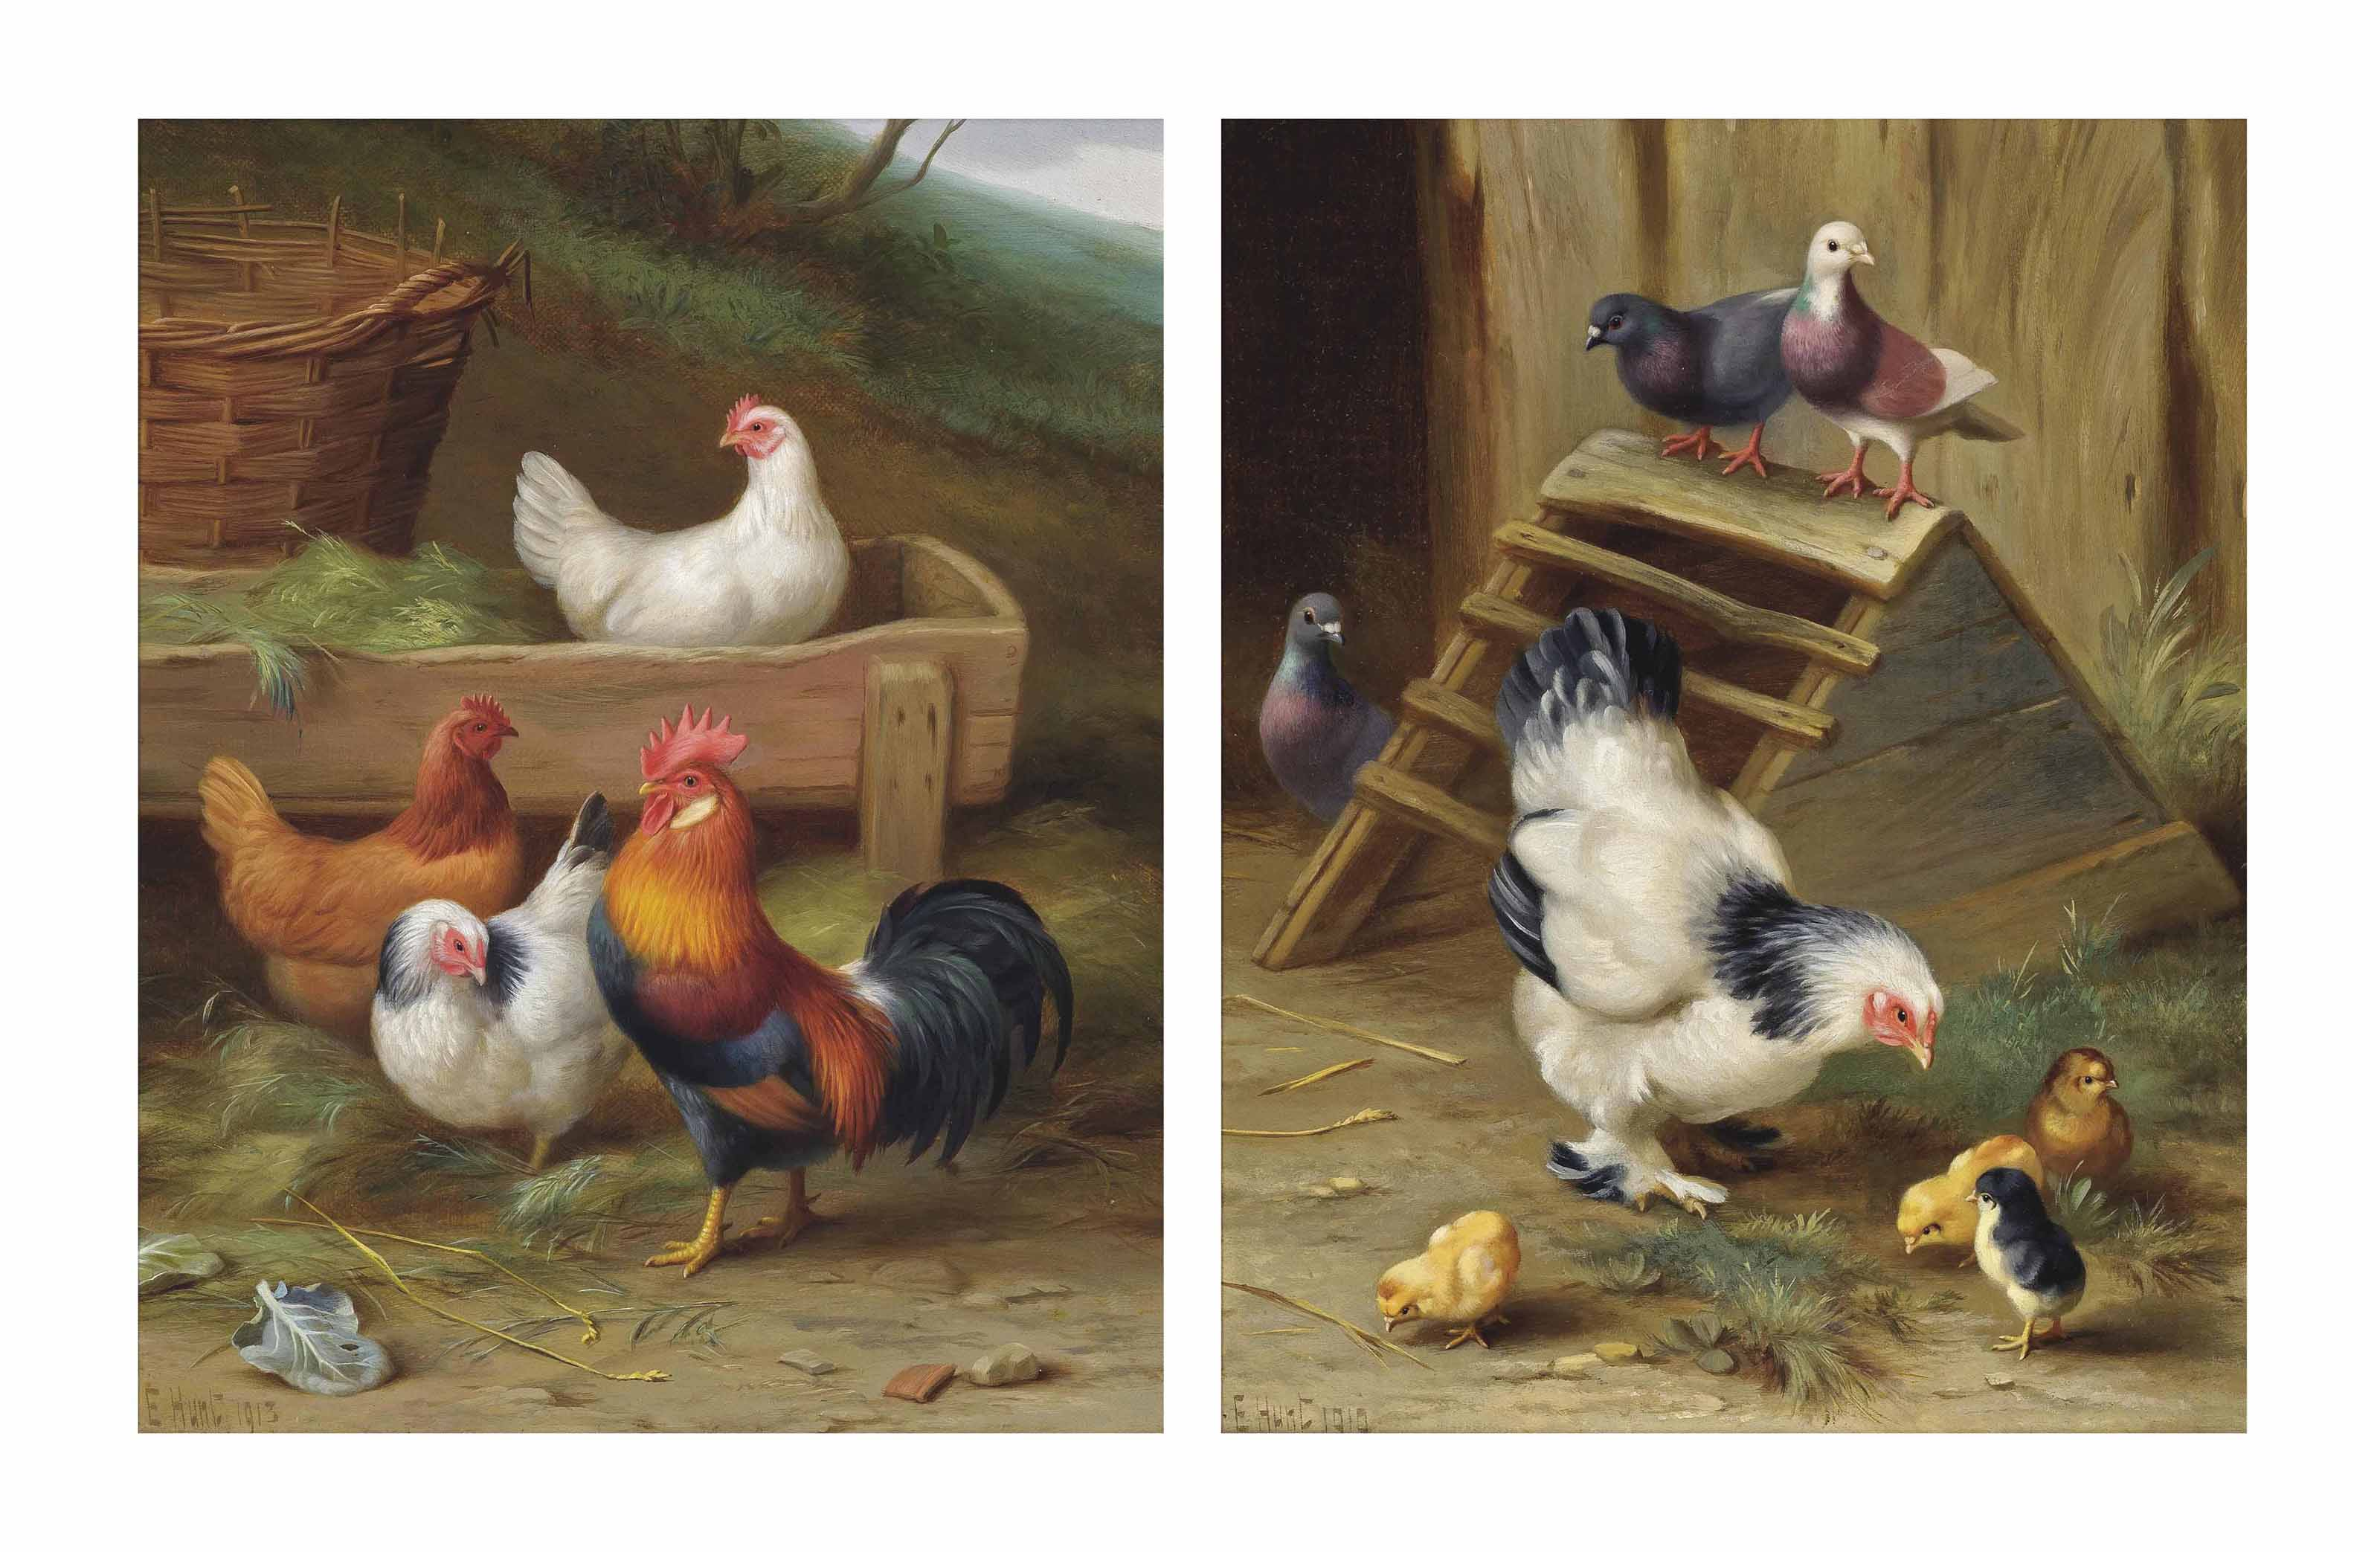 A cockerel and his hens; and A mother hen and her chicks